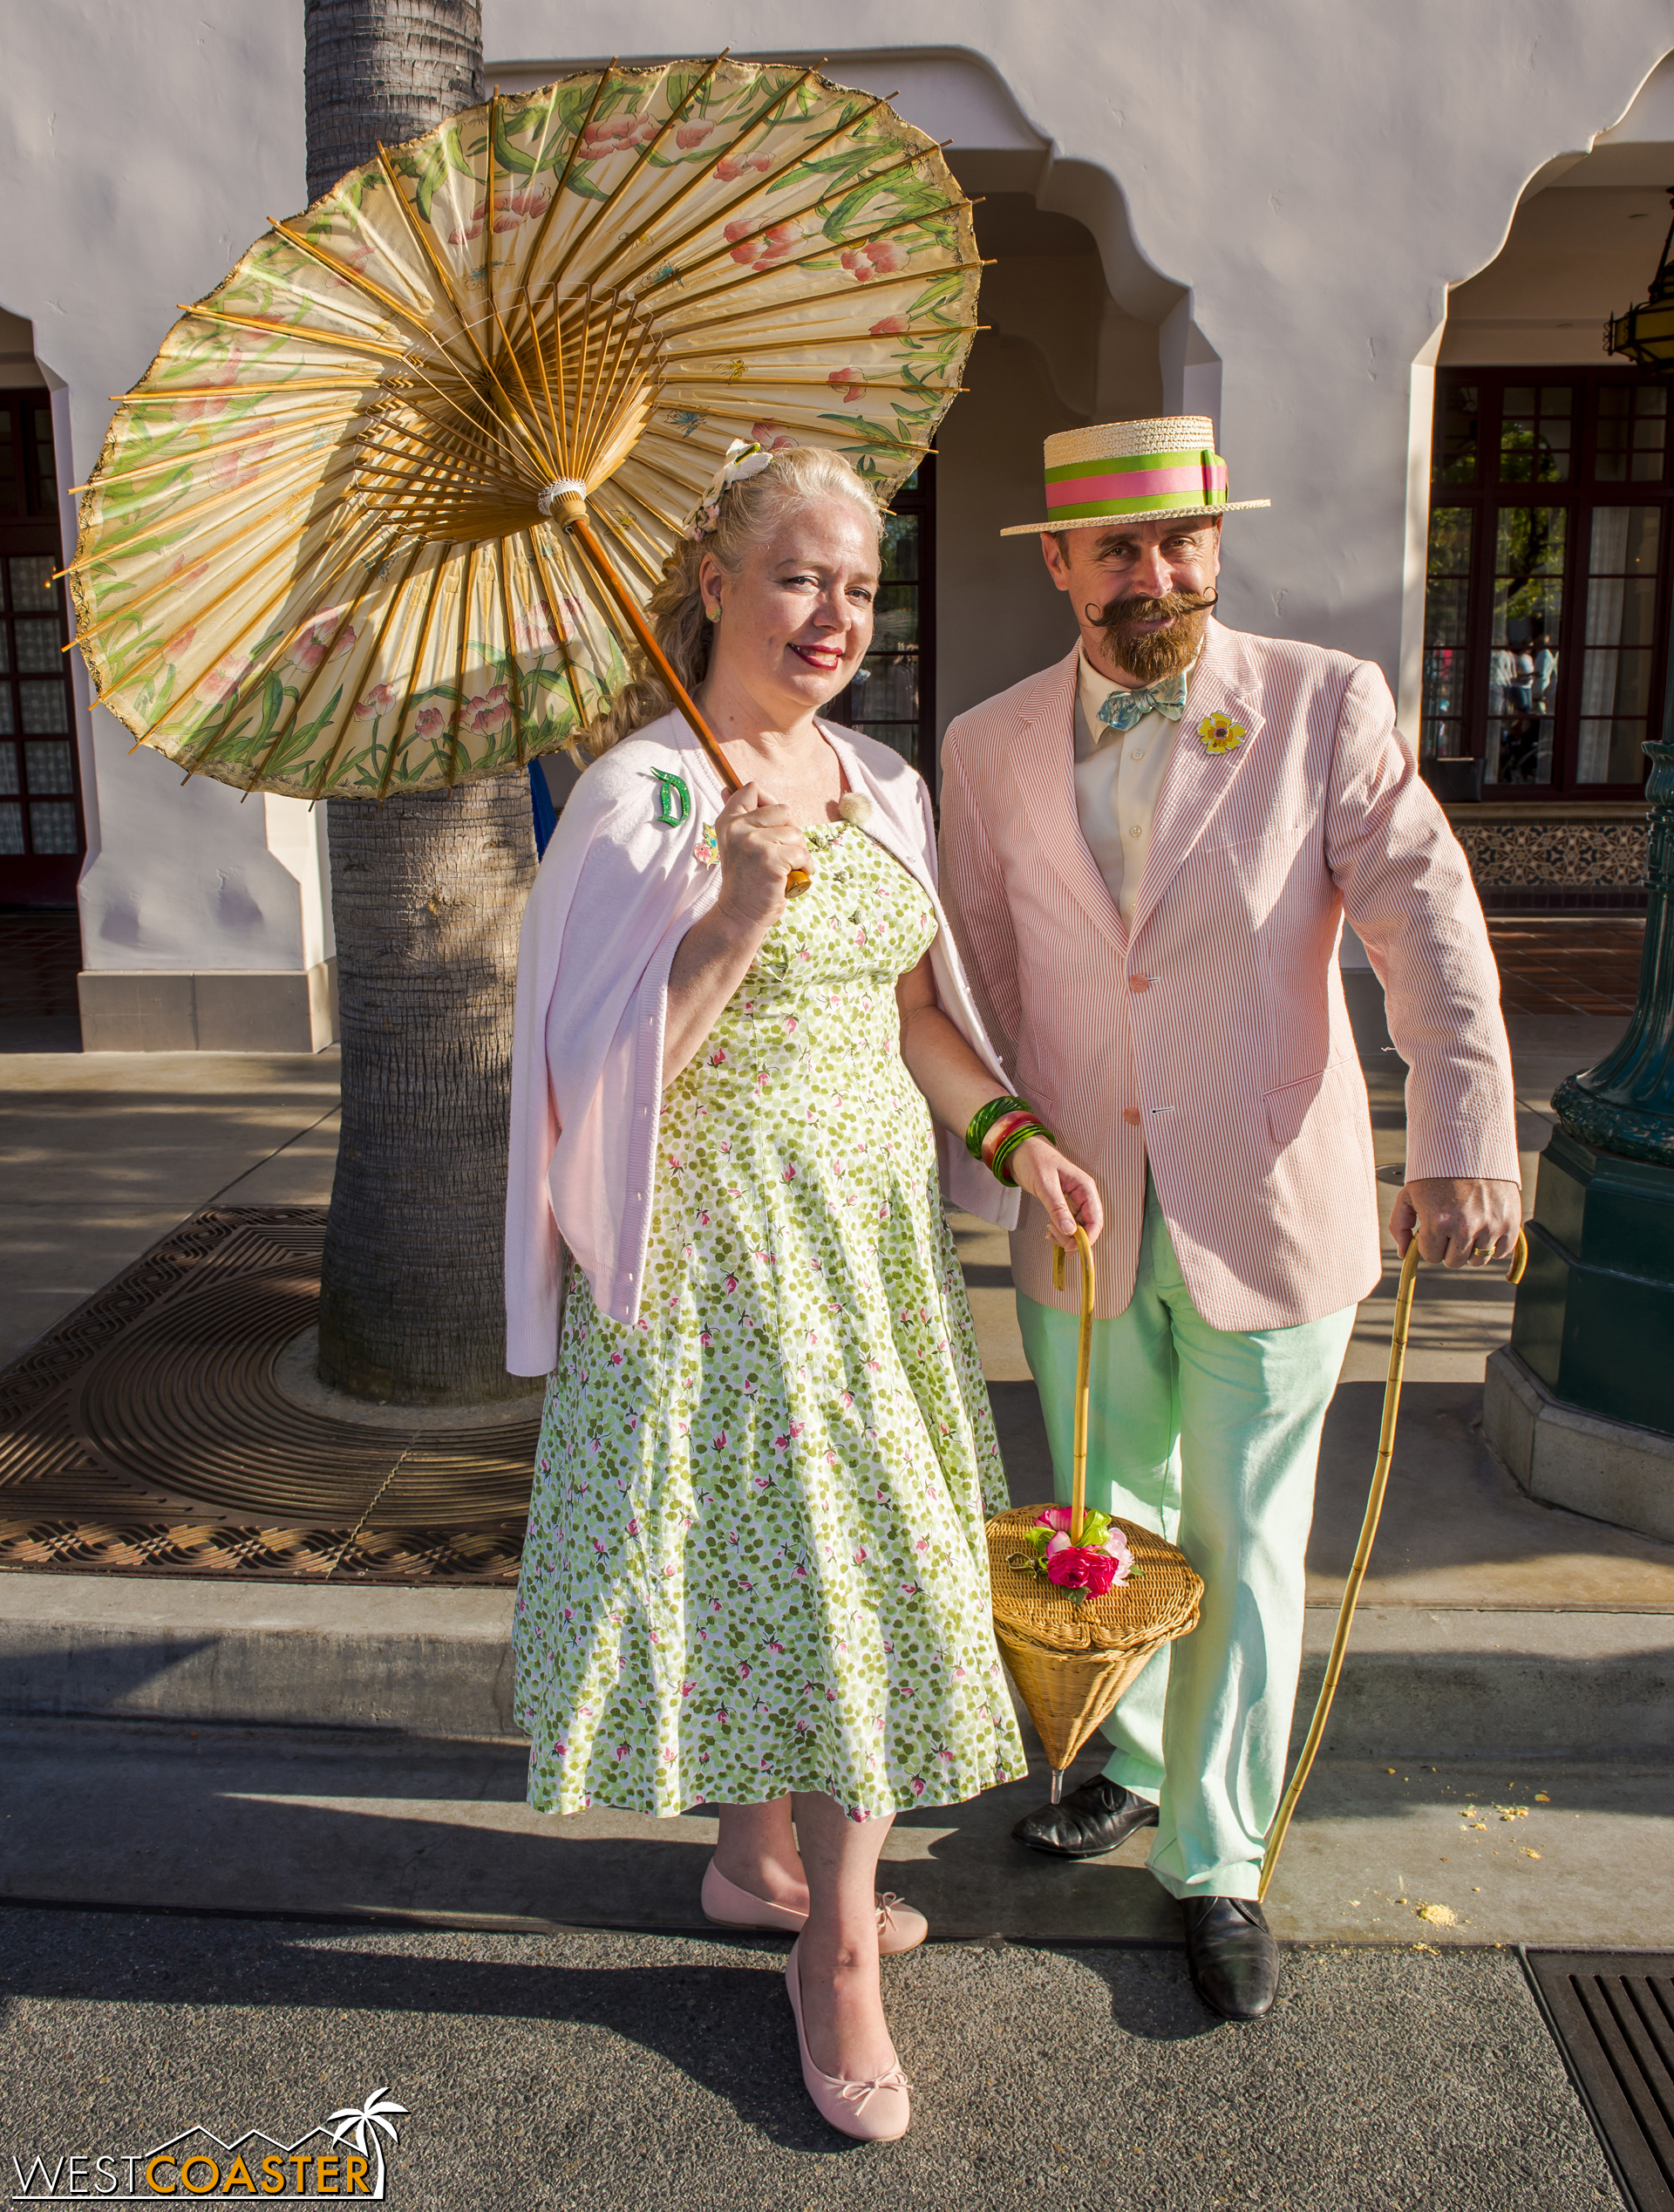 This couple imbibes full springtime and Easter vibrance.